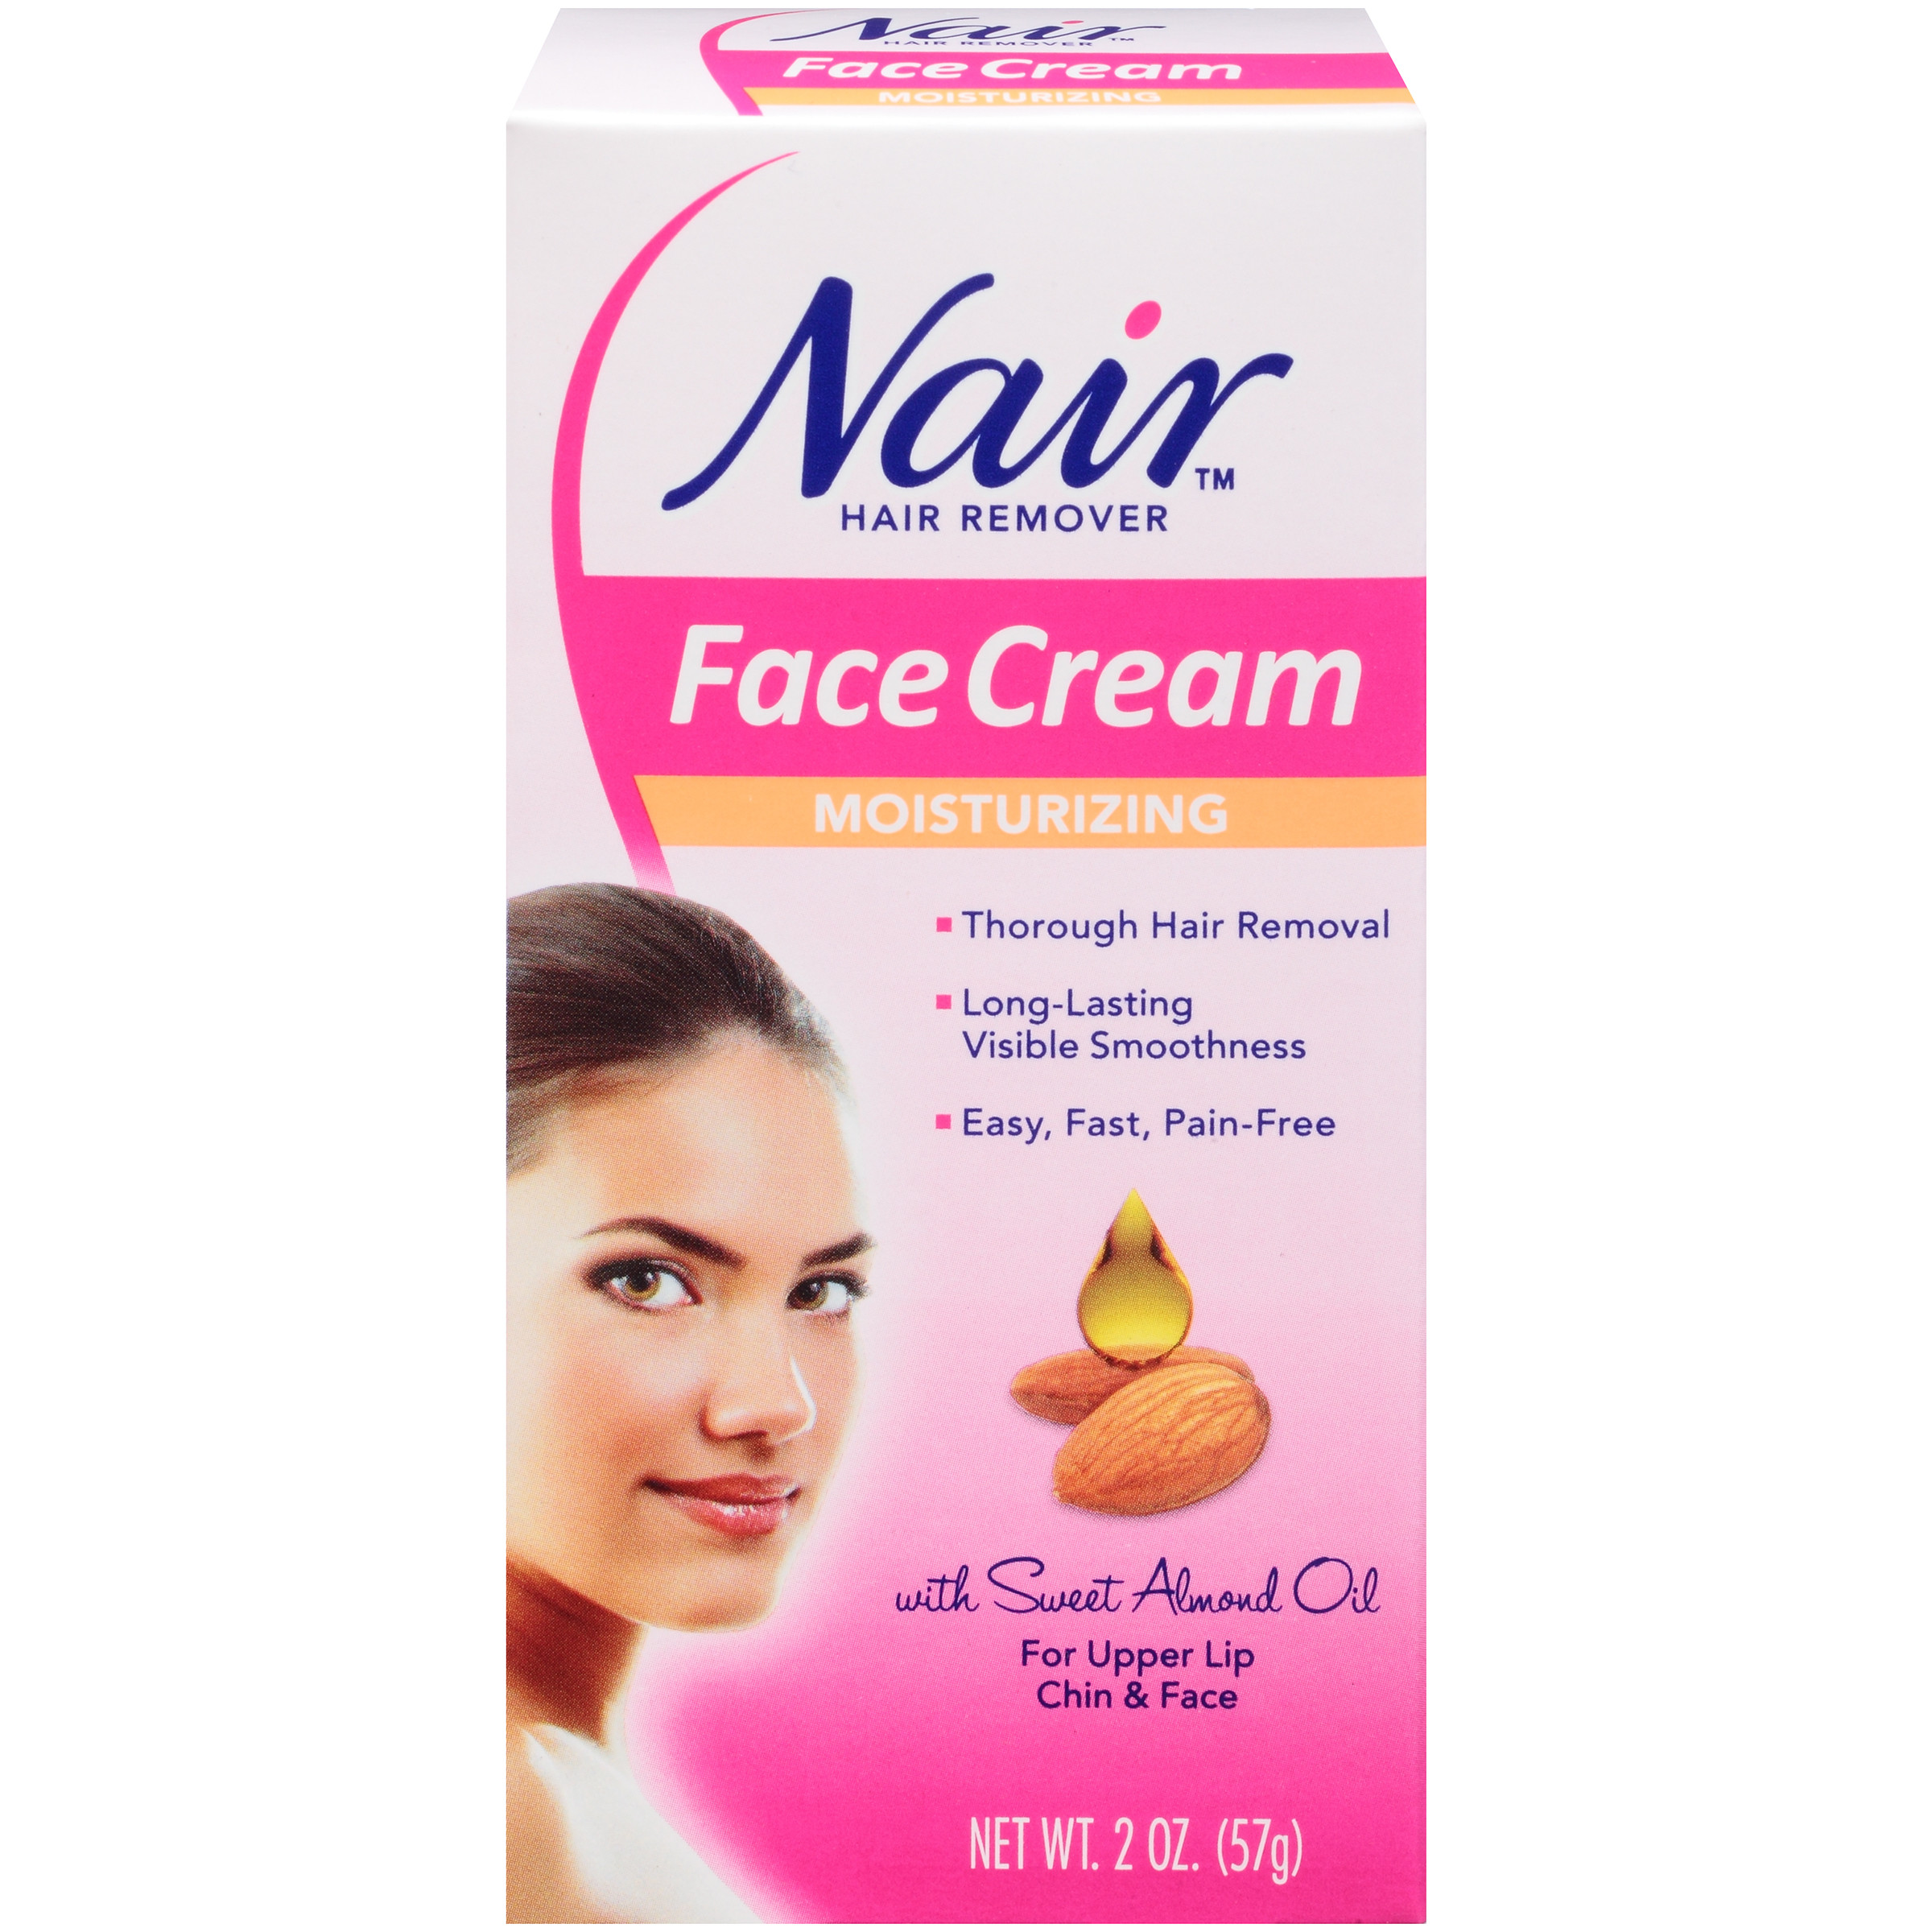 Nair Hair Remover Moisturizing Face Cream With Sweet Almond Oil